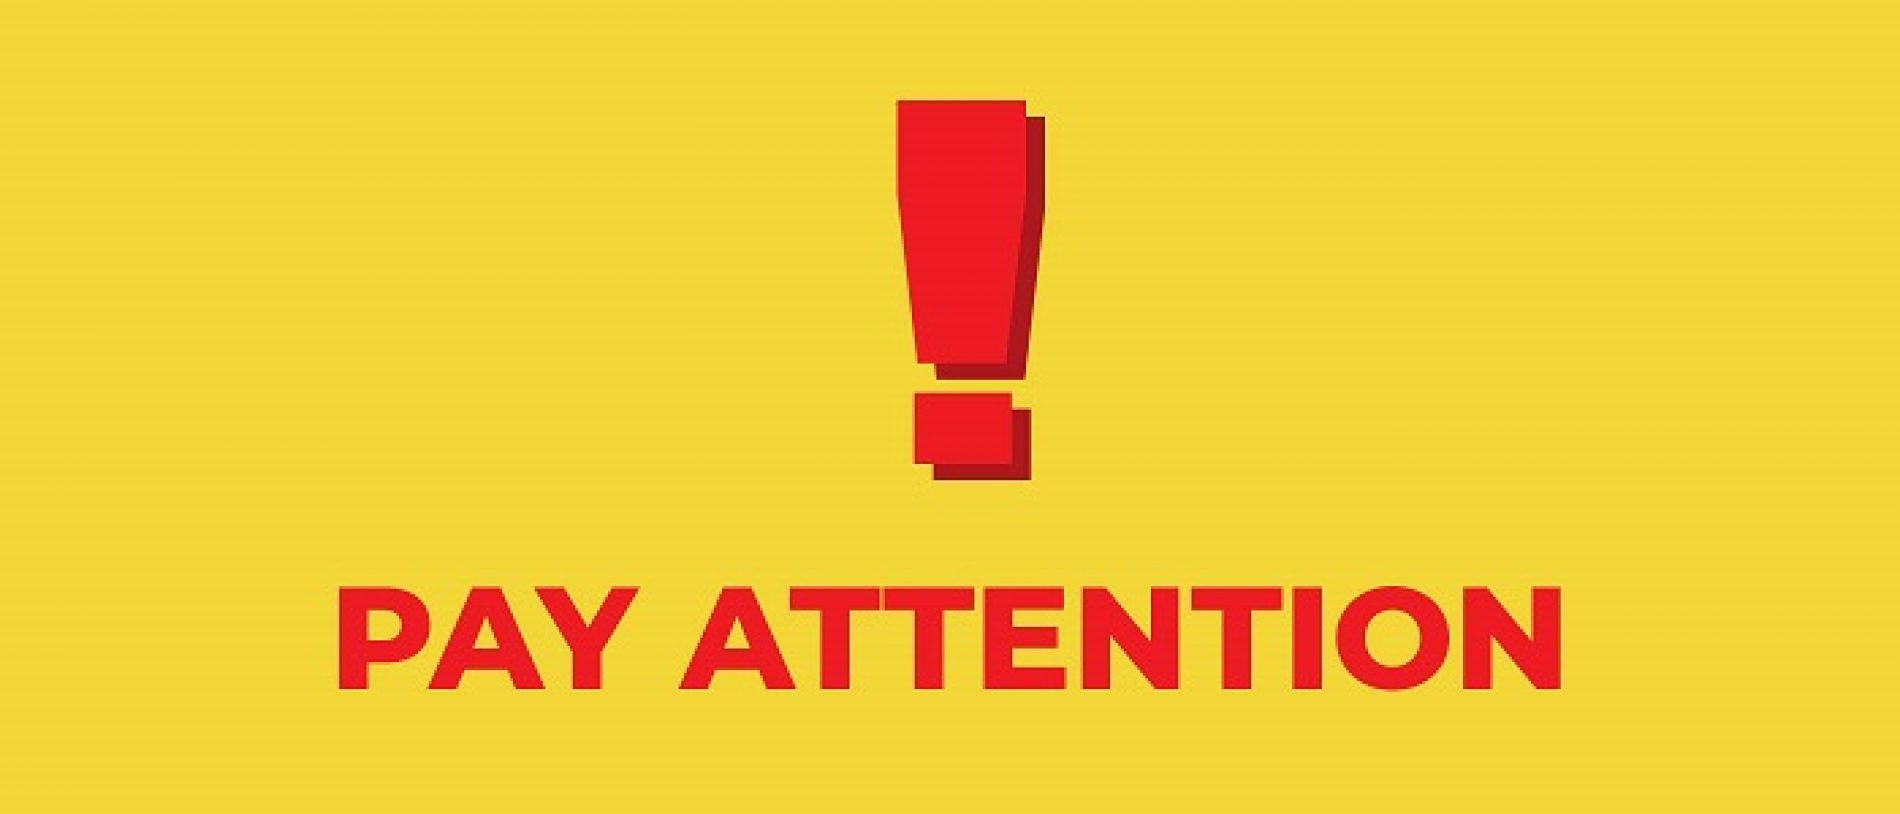 PLEASE, PAY ATTENTION TO THE KITO ALERTS!!!